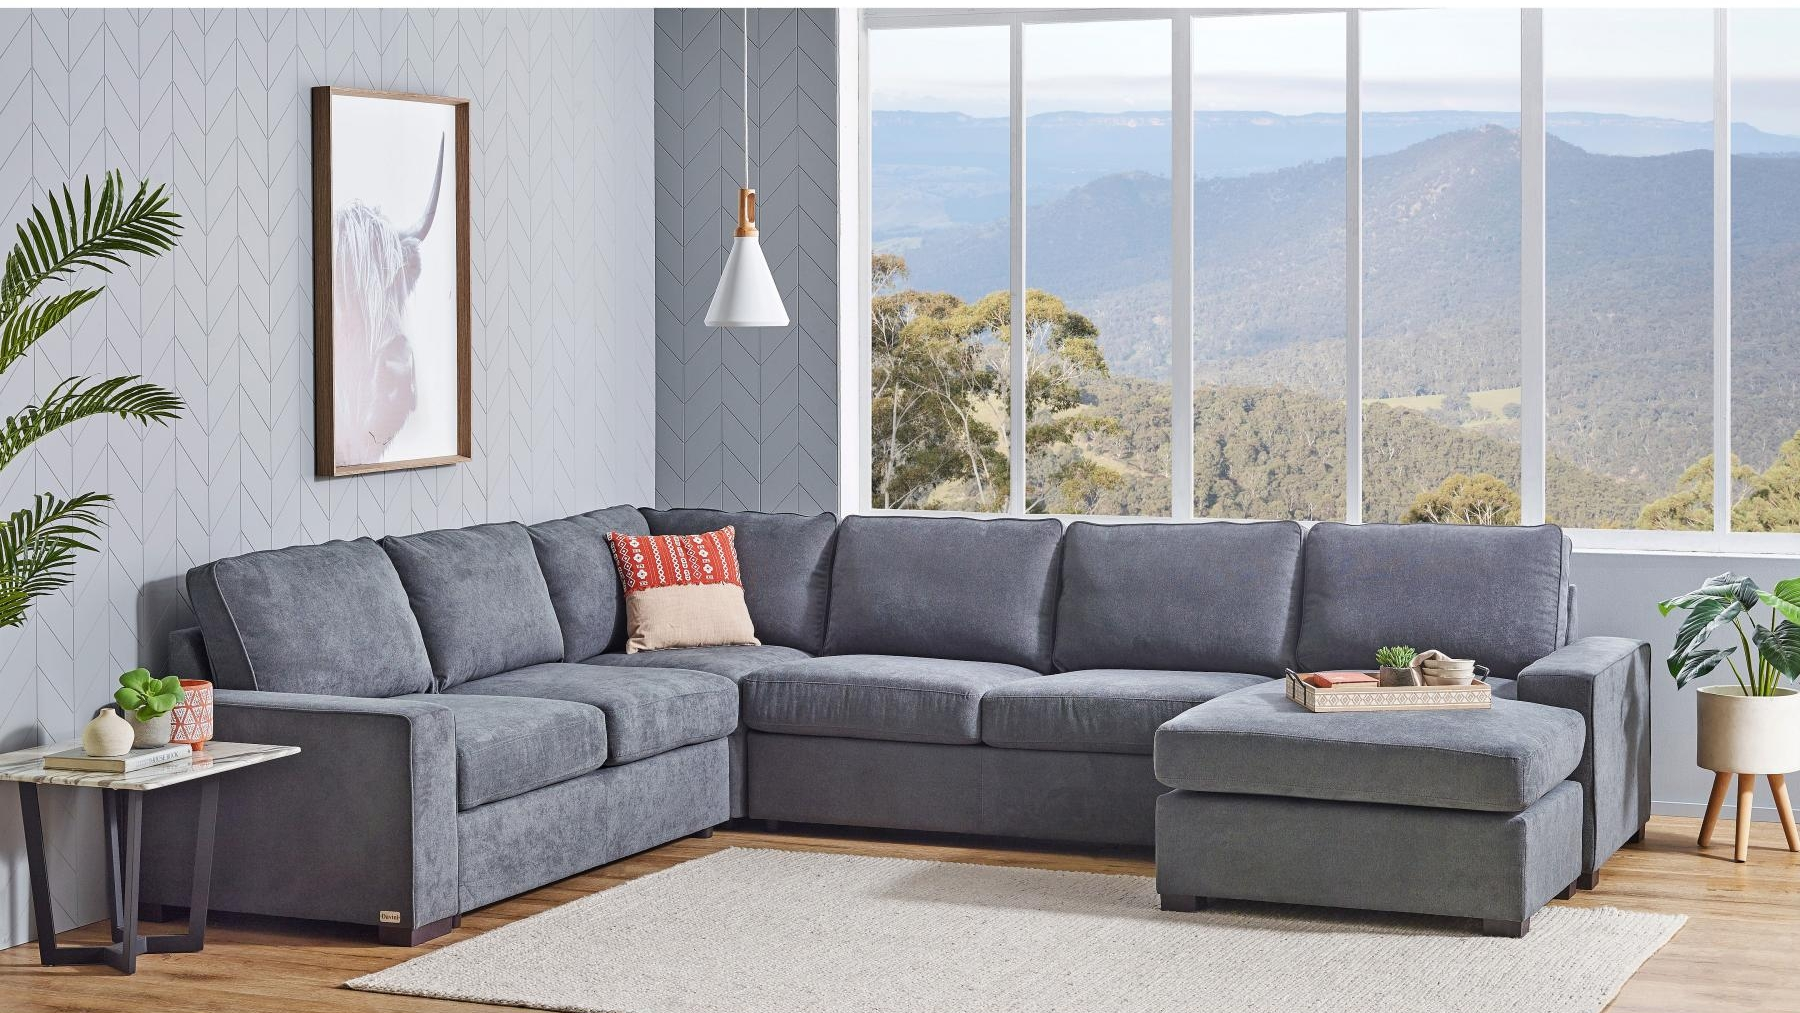 Picture of: Buy Bronson 6 Seater Modular Lounge Suite With Sofa Bed Harvey Norman Au